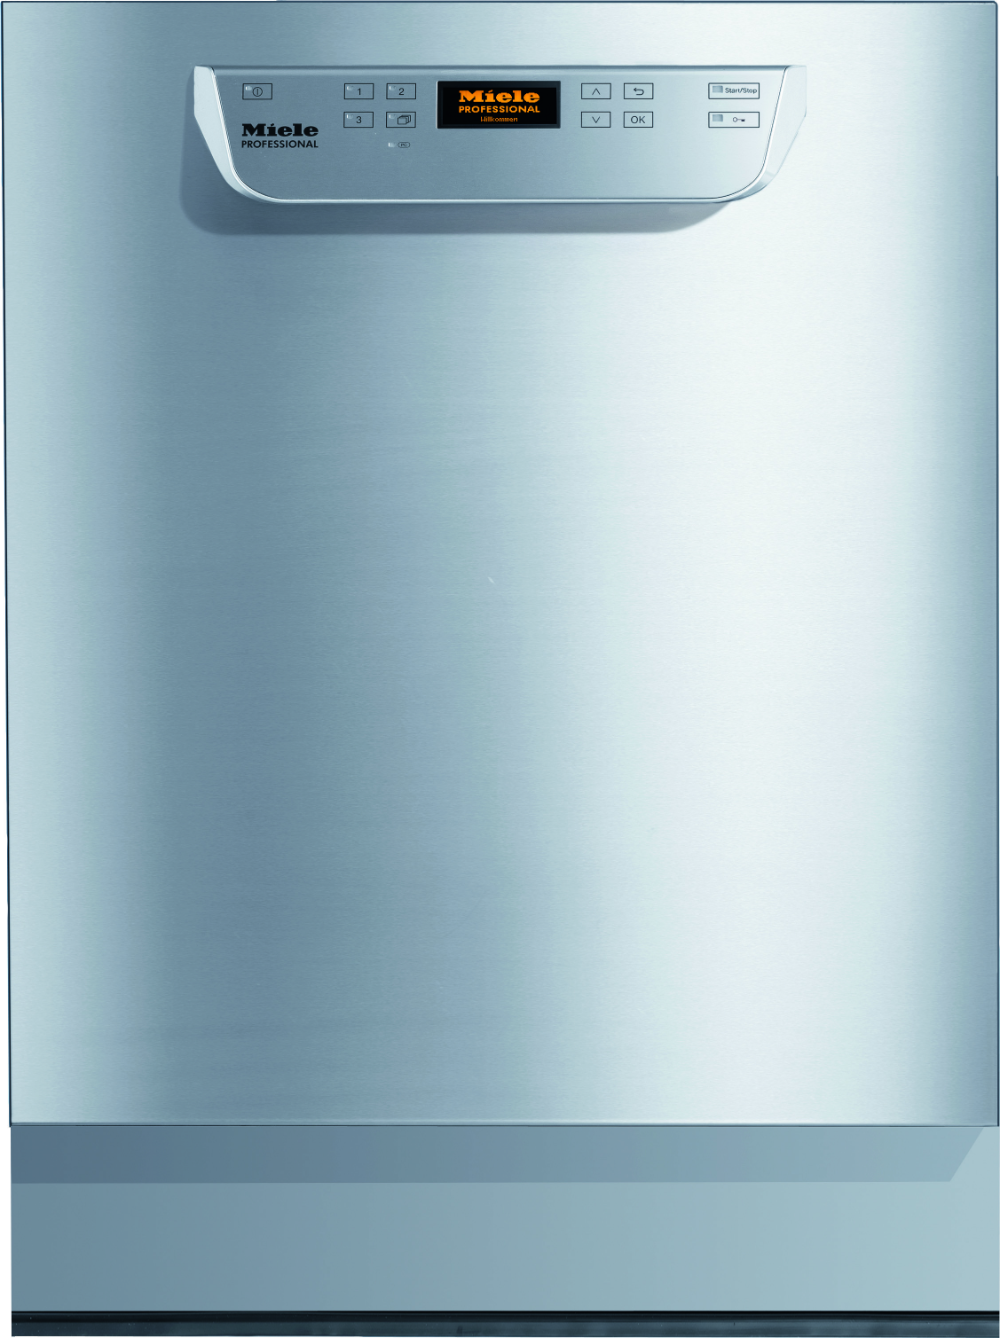 Miele Pg8061208v 24 Inch Full Console Dishwasher With 3 Wash Cycles 6 Wash Options Fresh Water System Autoopen Drying Professional Baskets Perfect Glasscar In 2020 Built In Dishwasher Water Softener Detergent Dispenser